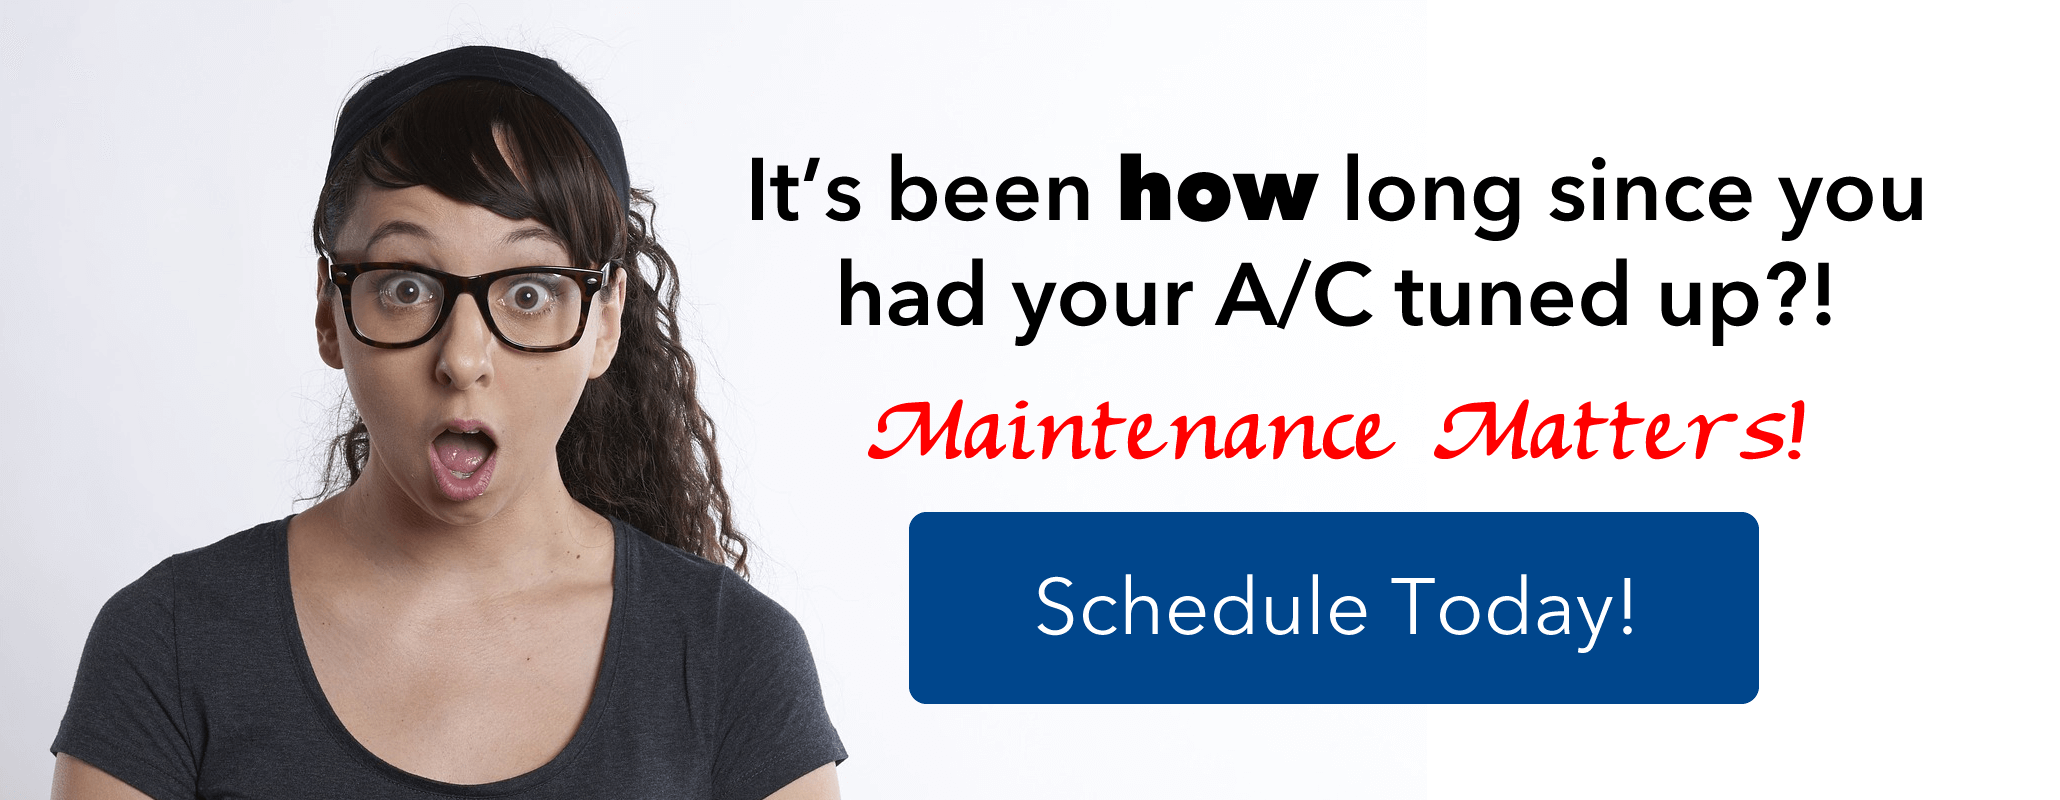 It has been how long since you had your Air Conditioner tuned up?! Maintenance Matters! Schedule now.